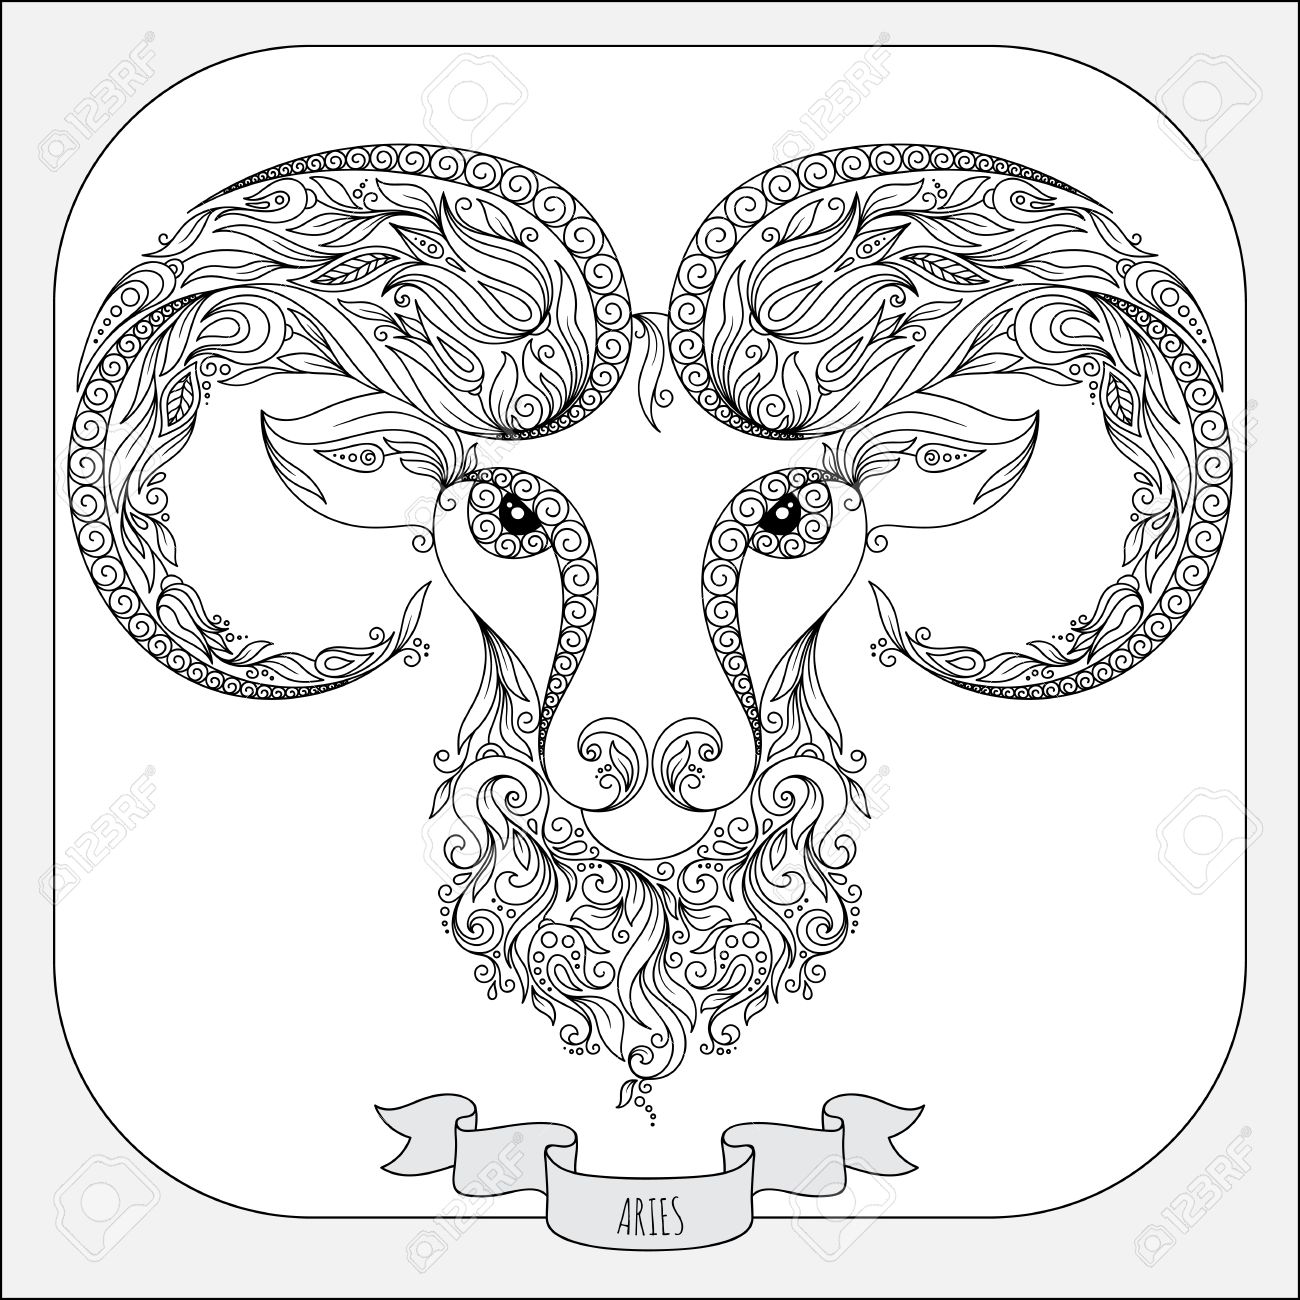 1300x1300 Pattern For Coloring Book. Hand Drawn Line Flowers Art Of Zodiac